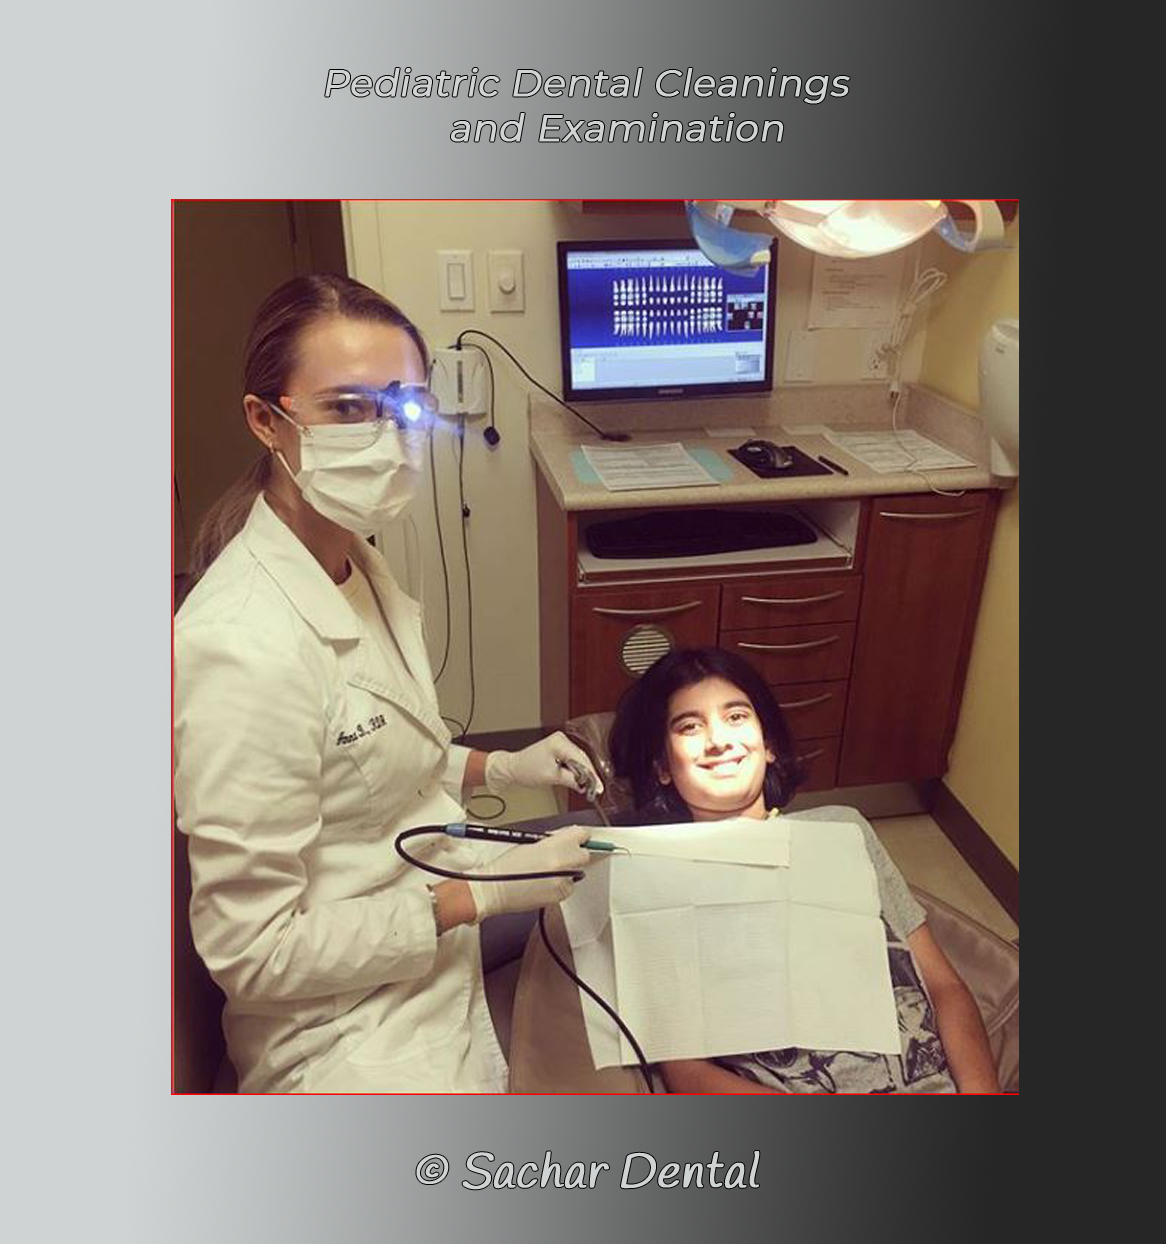 Picture of dental hygienist Anna with boy, pediatric patient for dental cleaning and examination